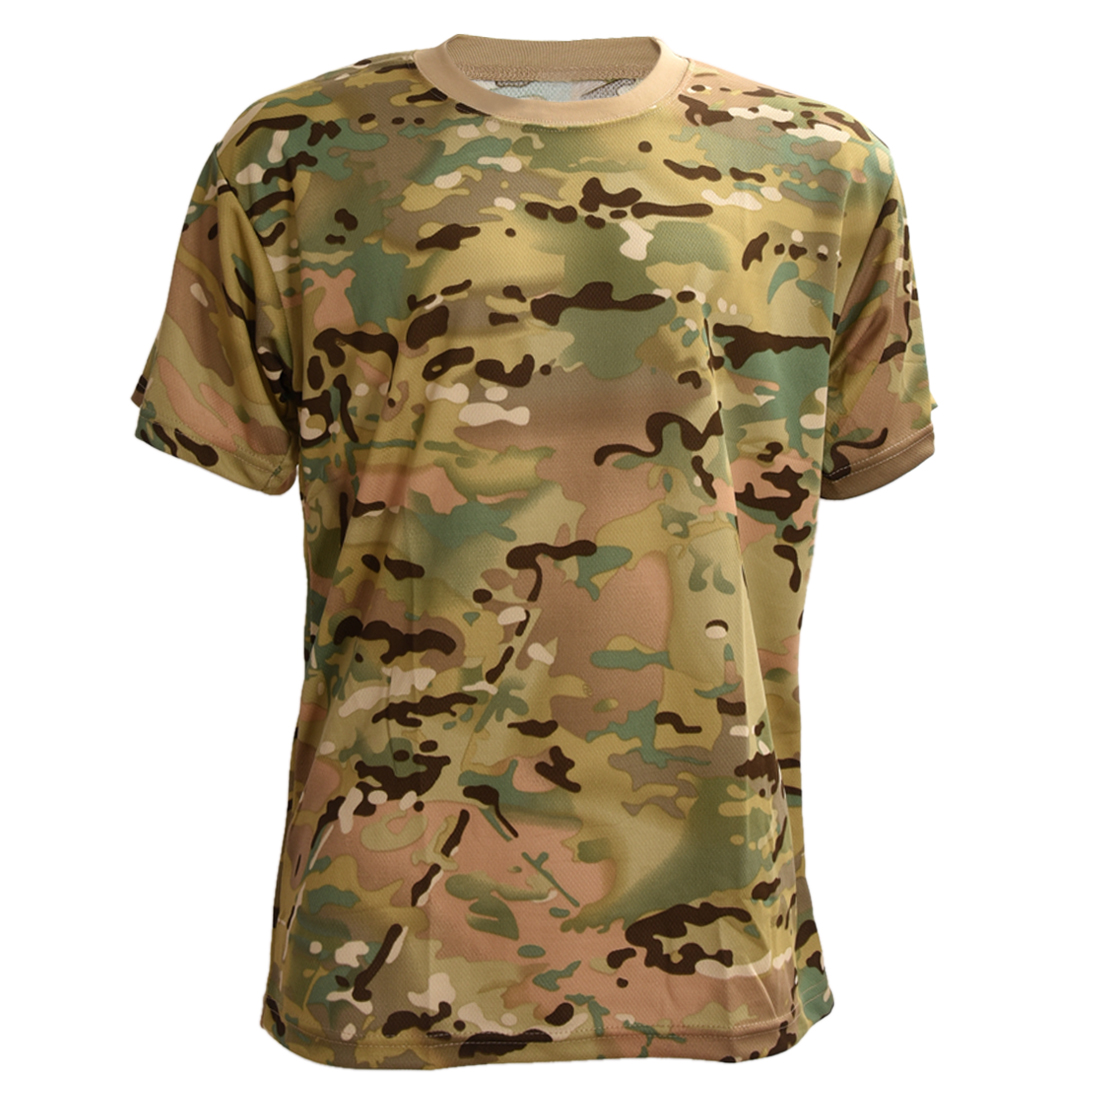 ELOS-Summer Outdoors Hunting Camouflage T-shirt Men Breathable Army Tactical Combat Dry Sport Camo Outdoor Camp Tees CP 2XL